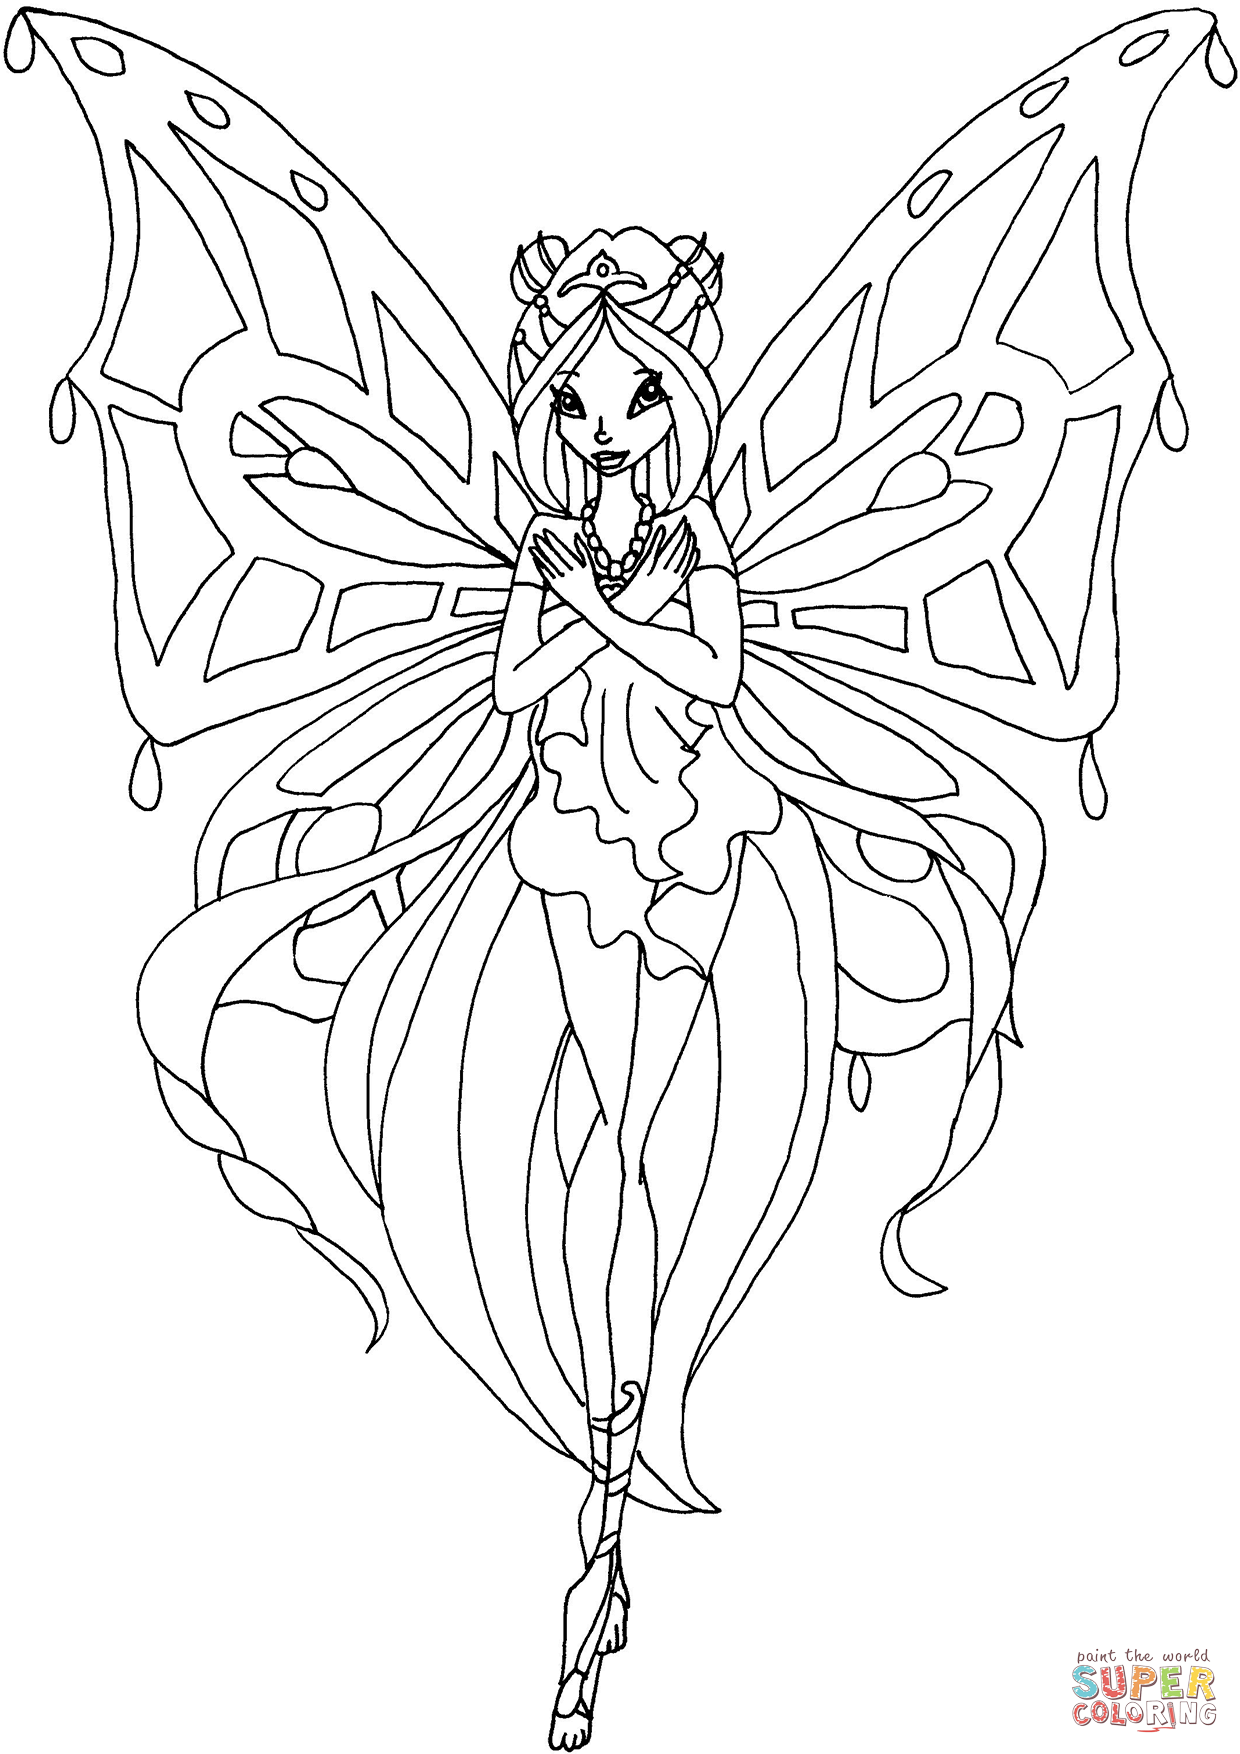 Coloring Enchantix Flora Coloring Page Free Printable Pages With Film Winx Club Coloring Pages Sirenix Books Click The Enchantix Flora Color Disegni Free Flora